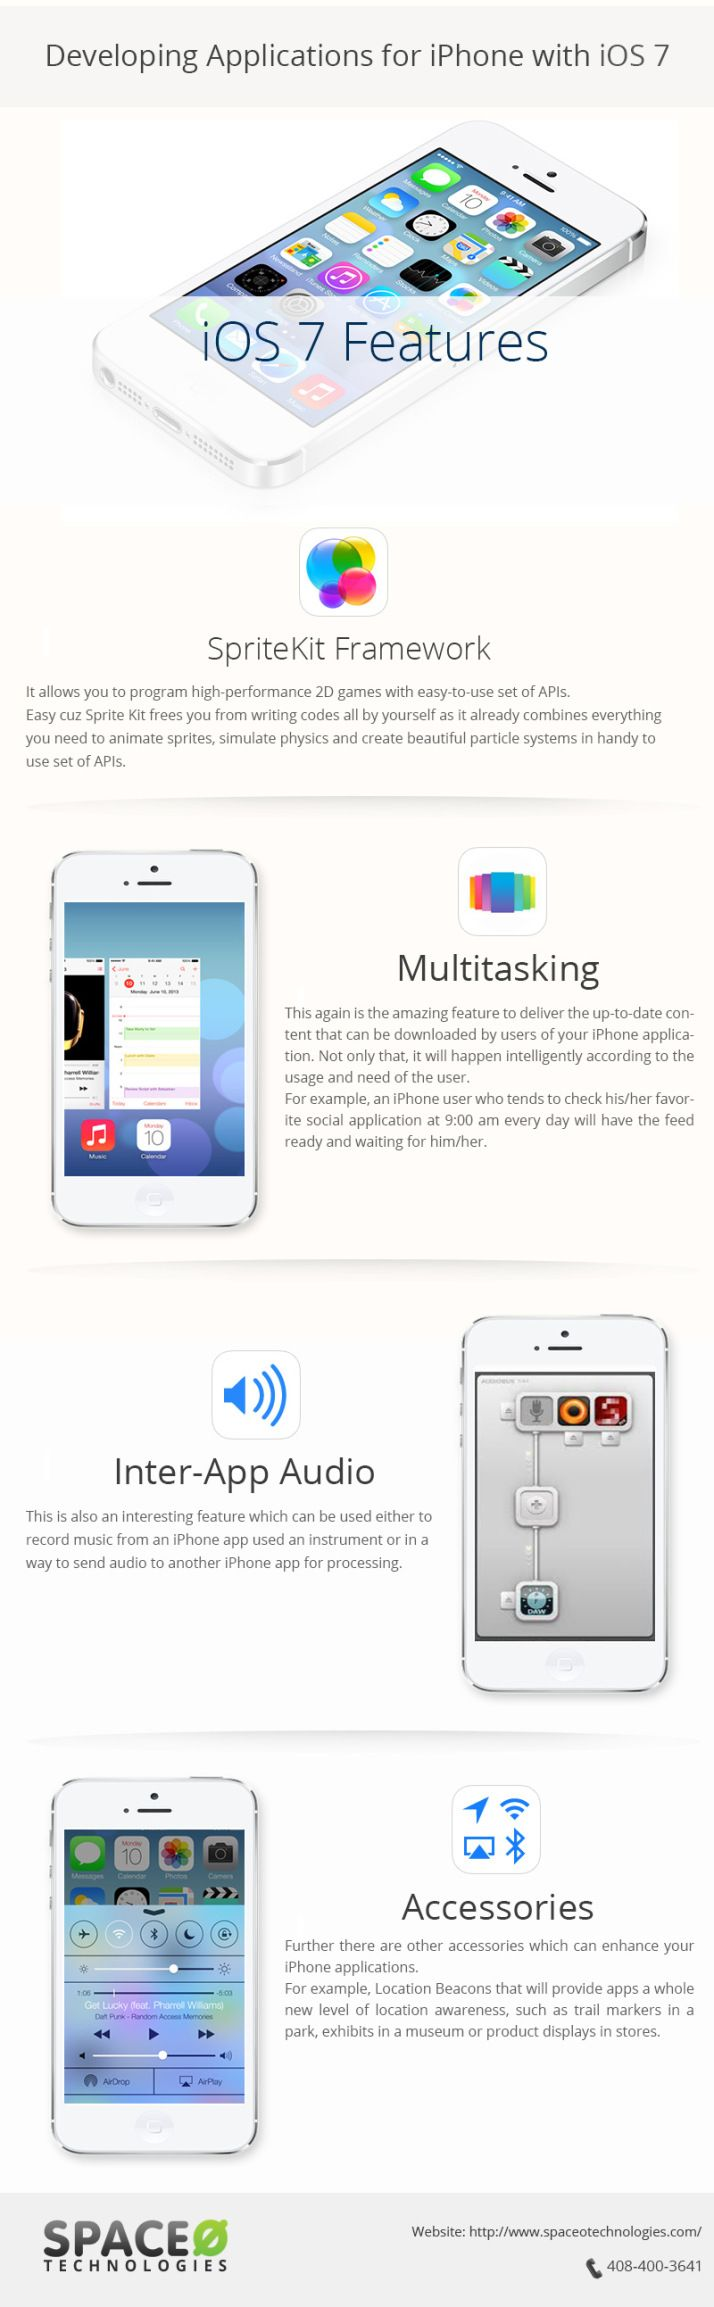 Developing Applications for iphone with IOS 7 #infographic... I can't stop watching the preview on Apple's page and getting really excited for this launch!